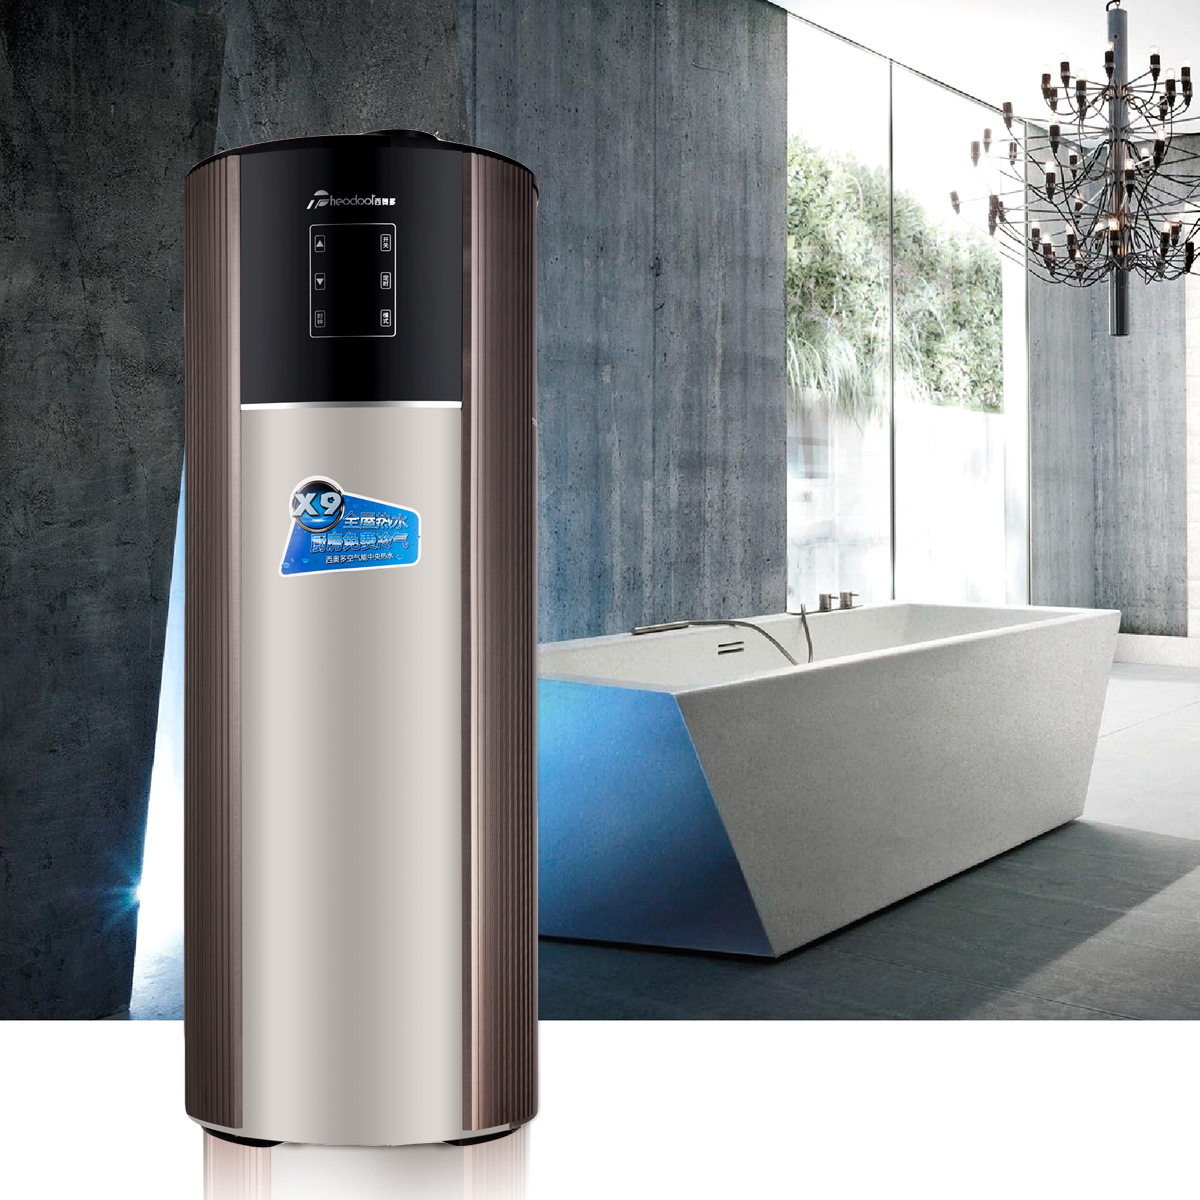 New 150L to 300L X9 WiFi Control Heat Pump Hot Water, Hybrid Water Heater Products